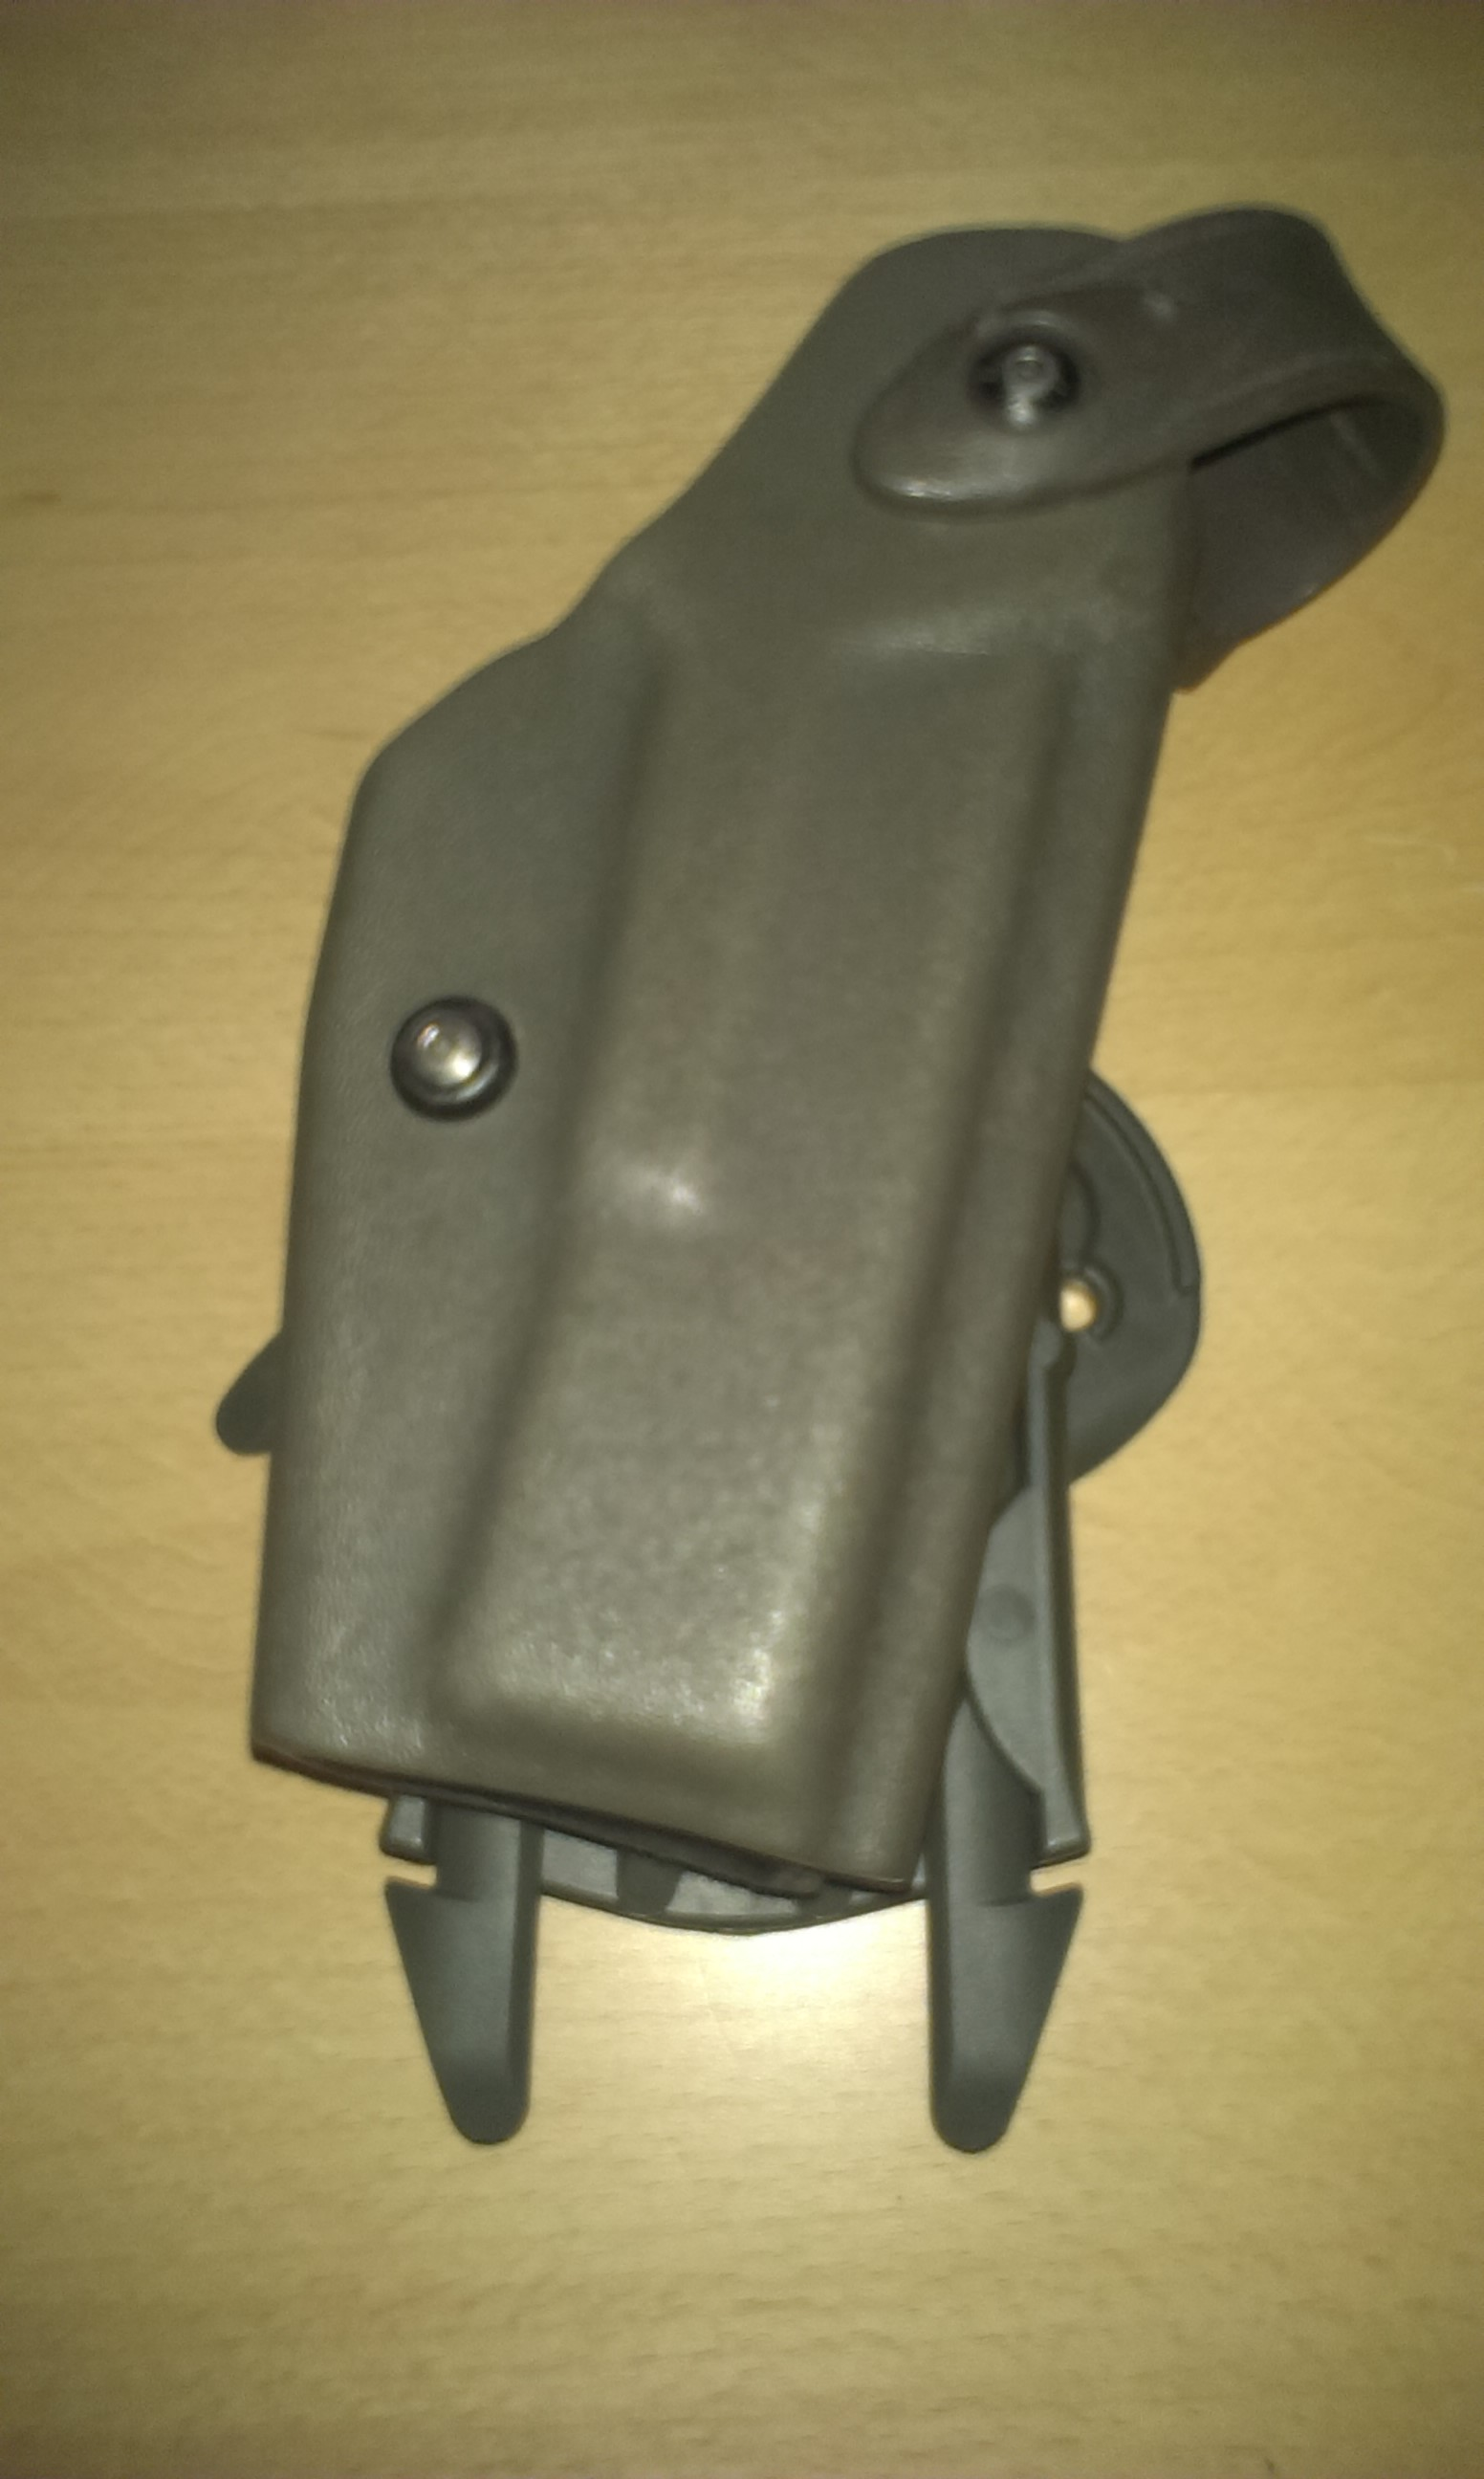 Holster inserted in vest assembly from the front.